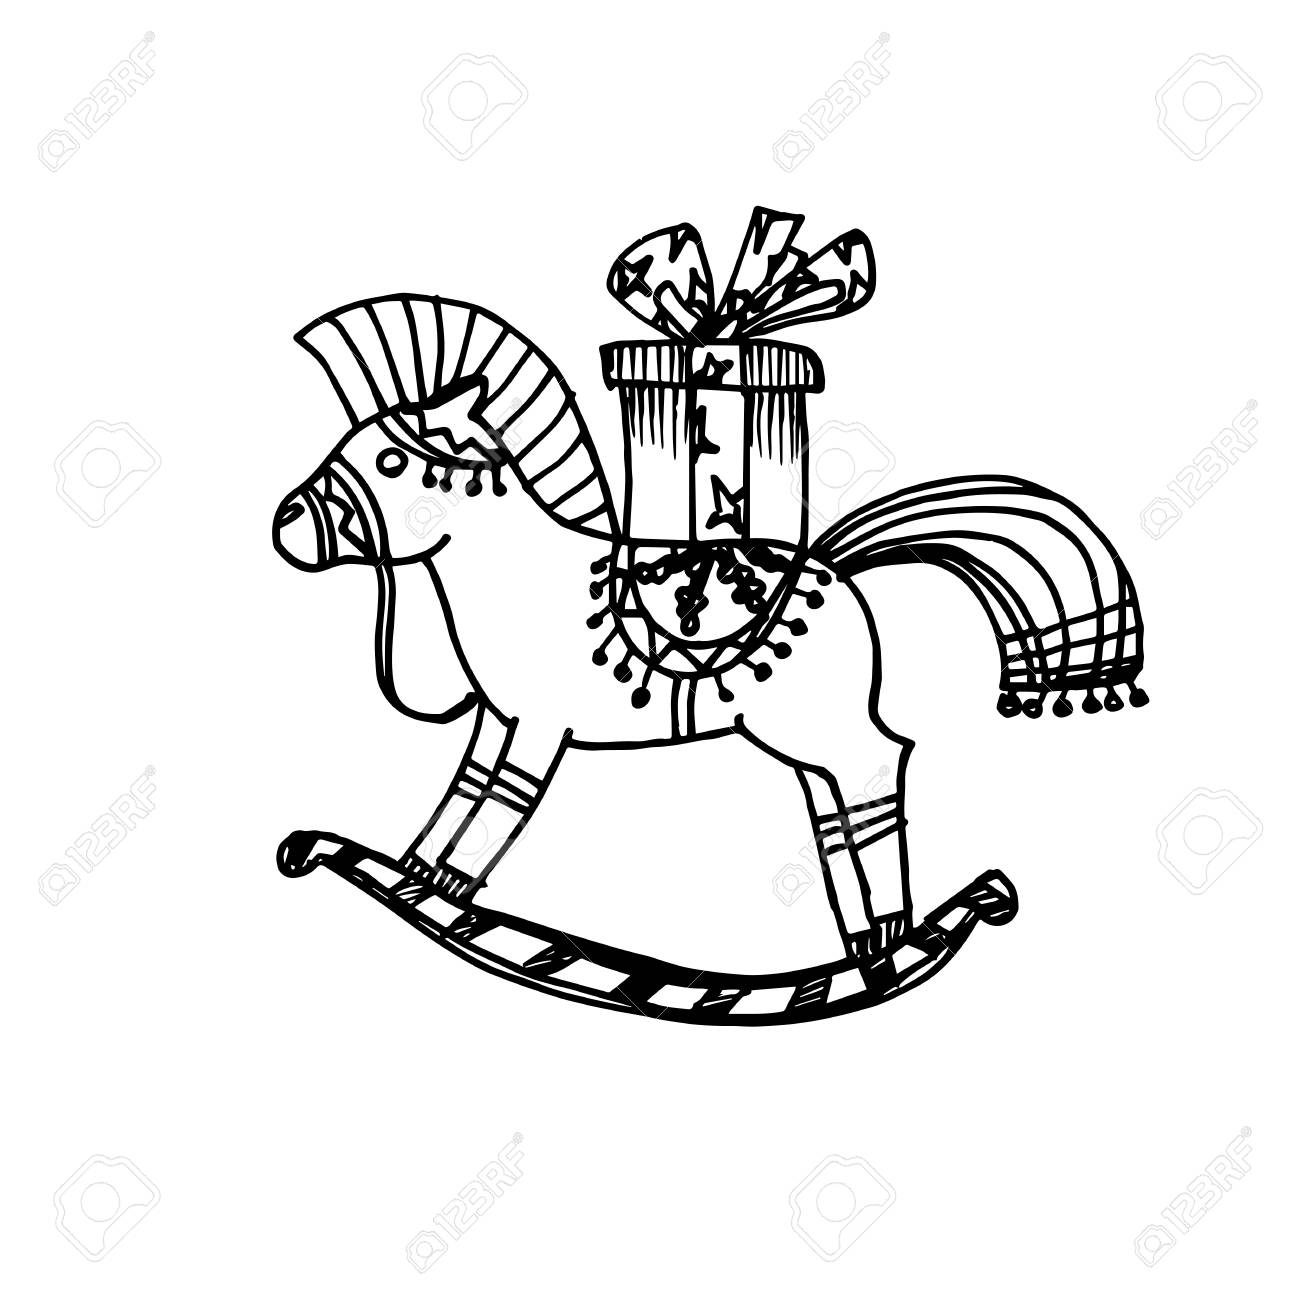 Christmas Horse Drawing.Black Mono Color Illustration For Merry Christmas And Happy New